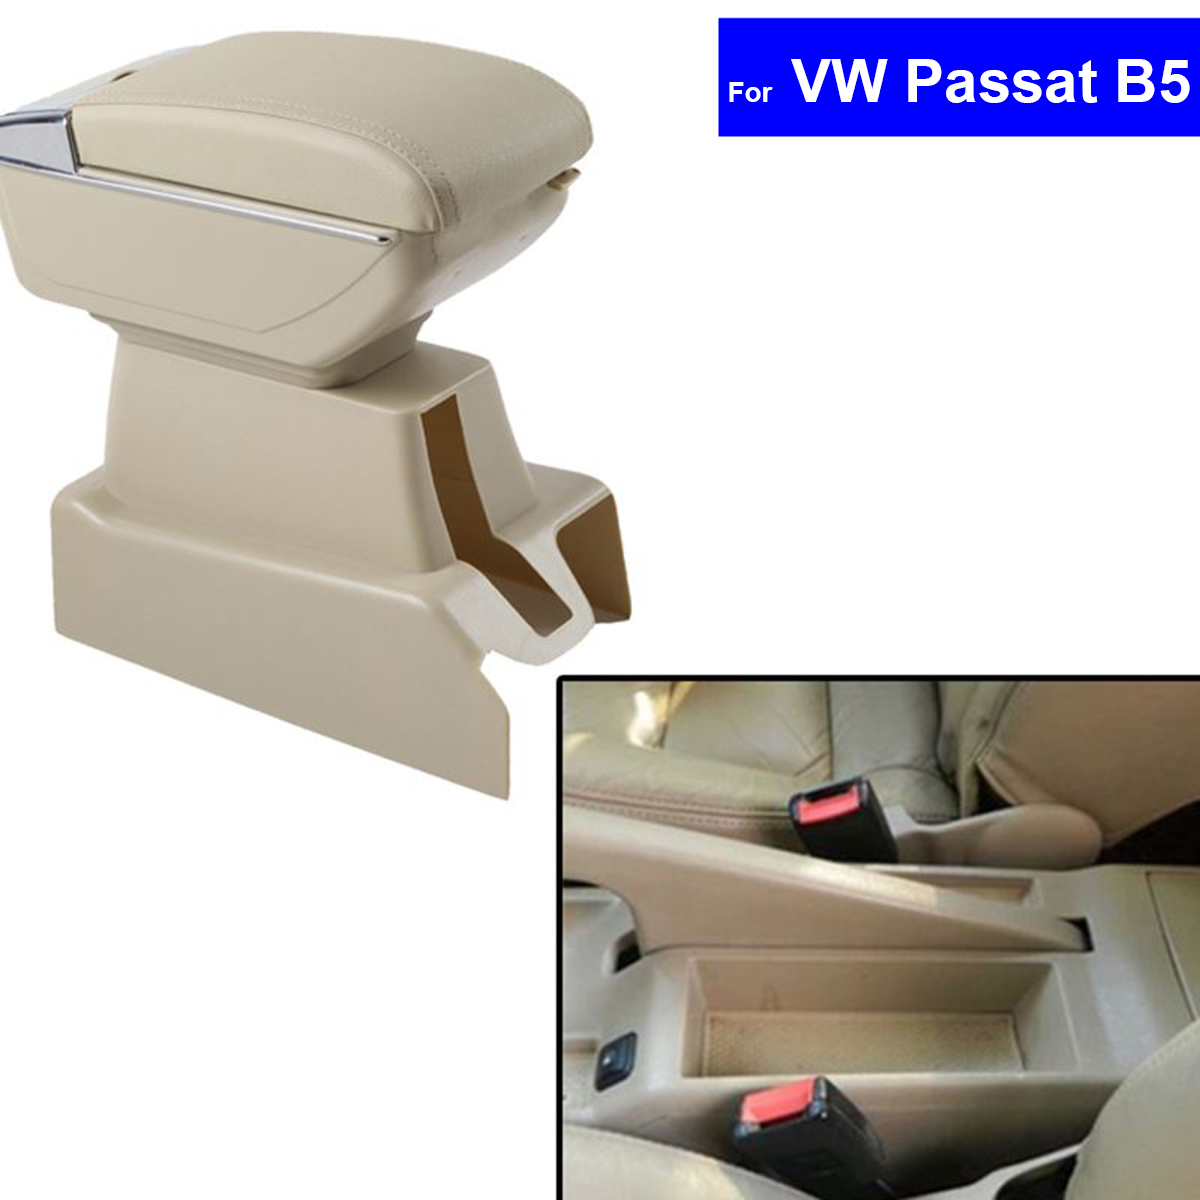 Leather Car Center Console Armrest Storage Box for Volkswagen VW Passat B5 2002 ~2005 2006 2007 2008 2009 Armrests Free Shipping